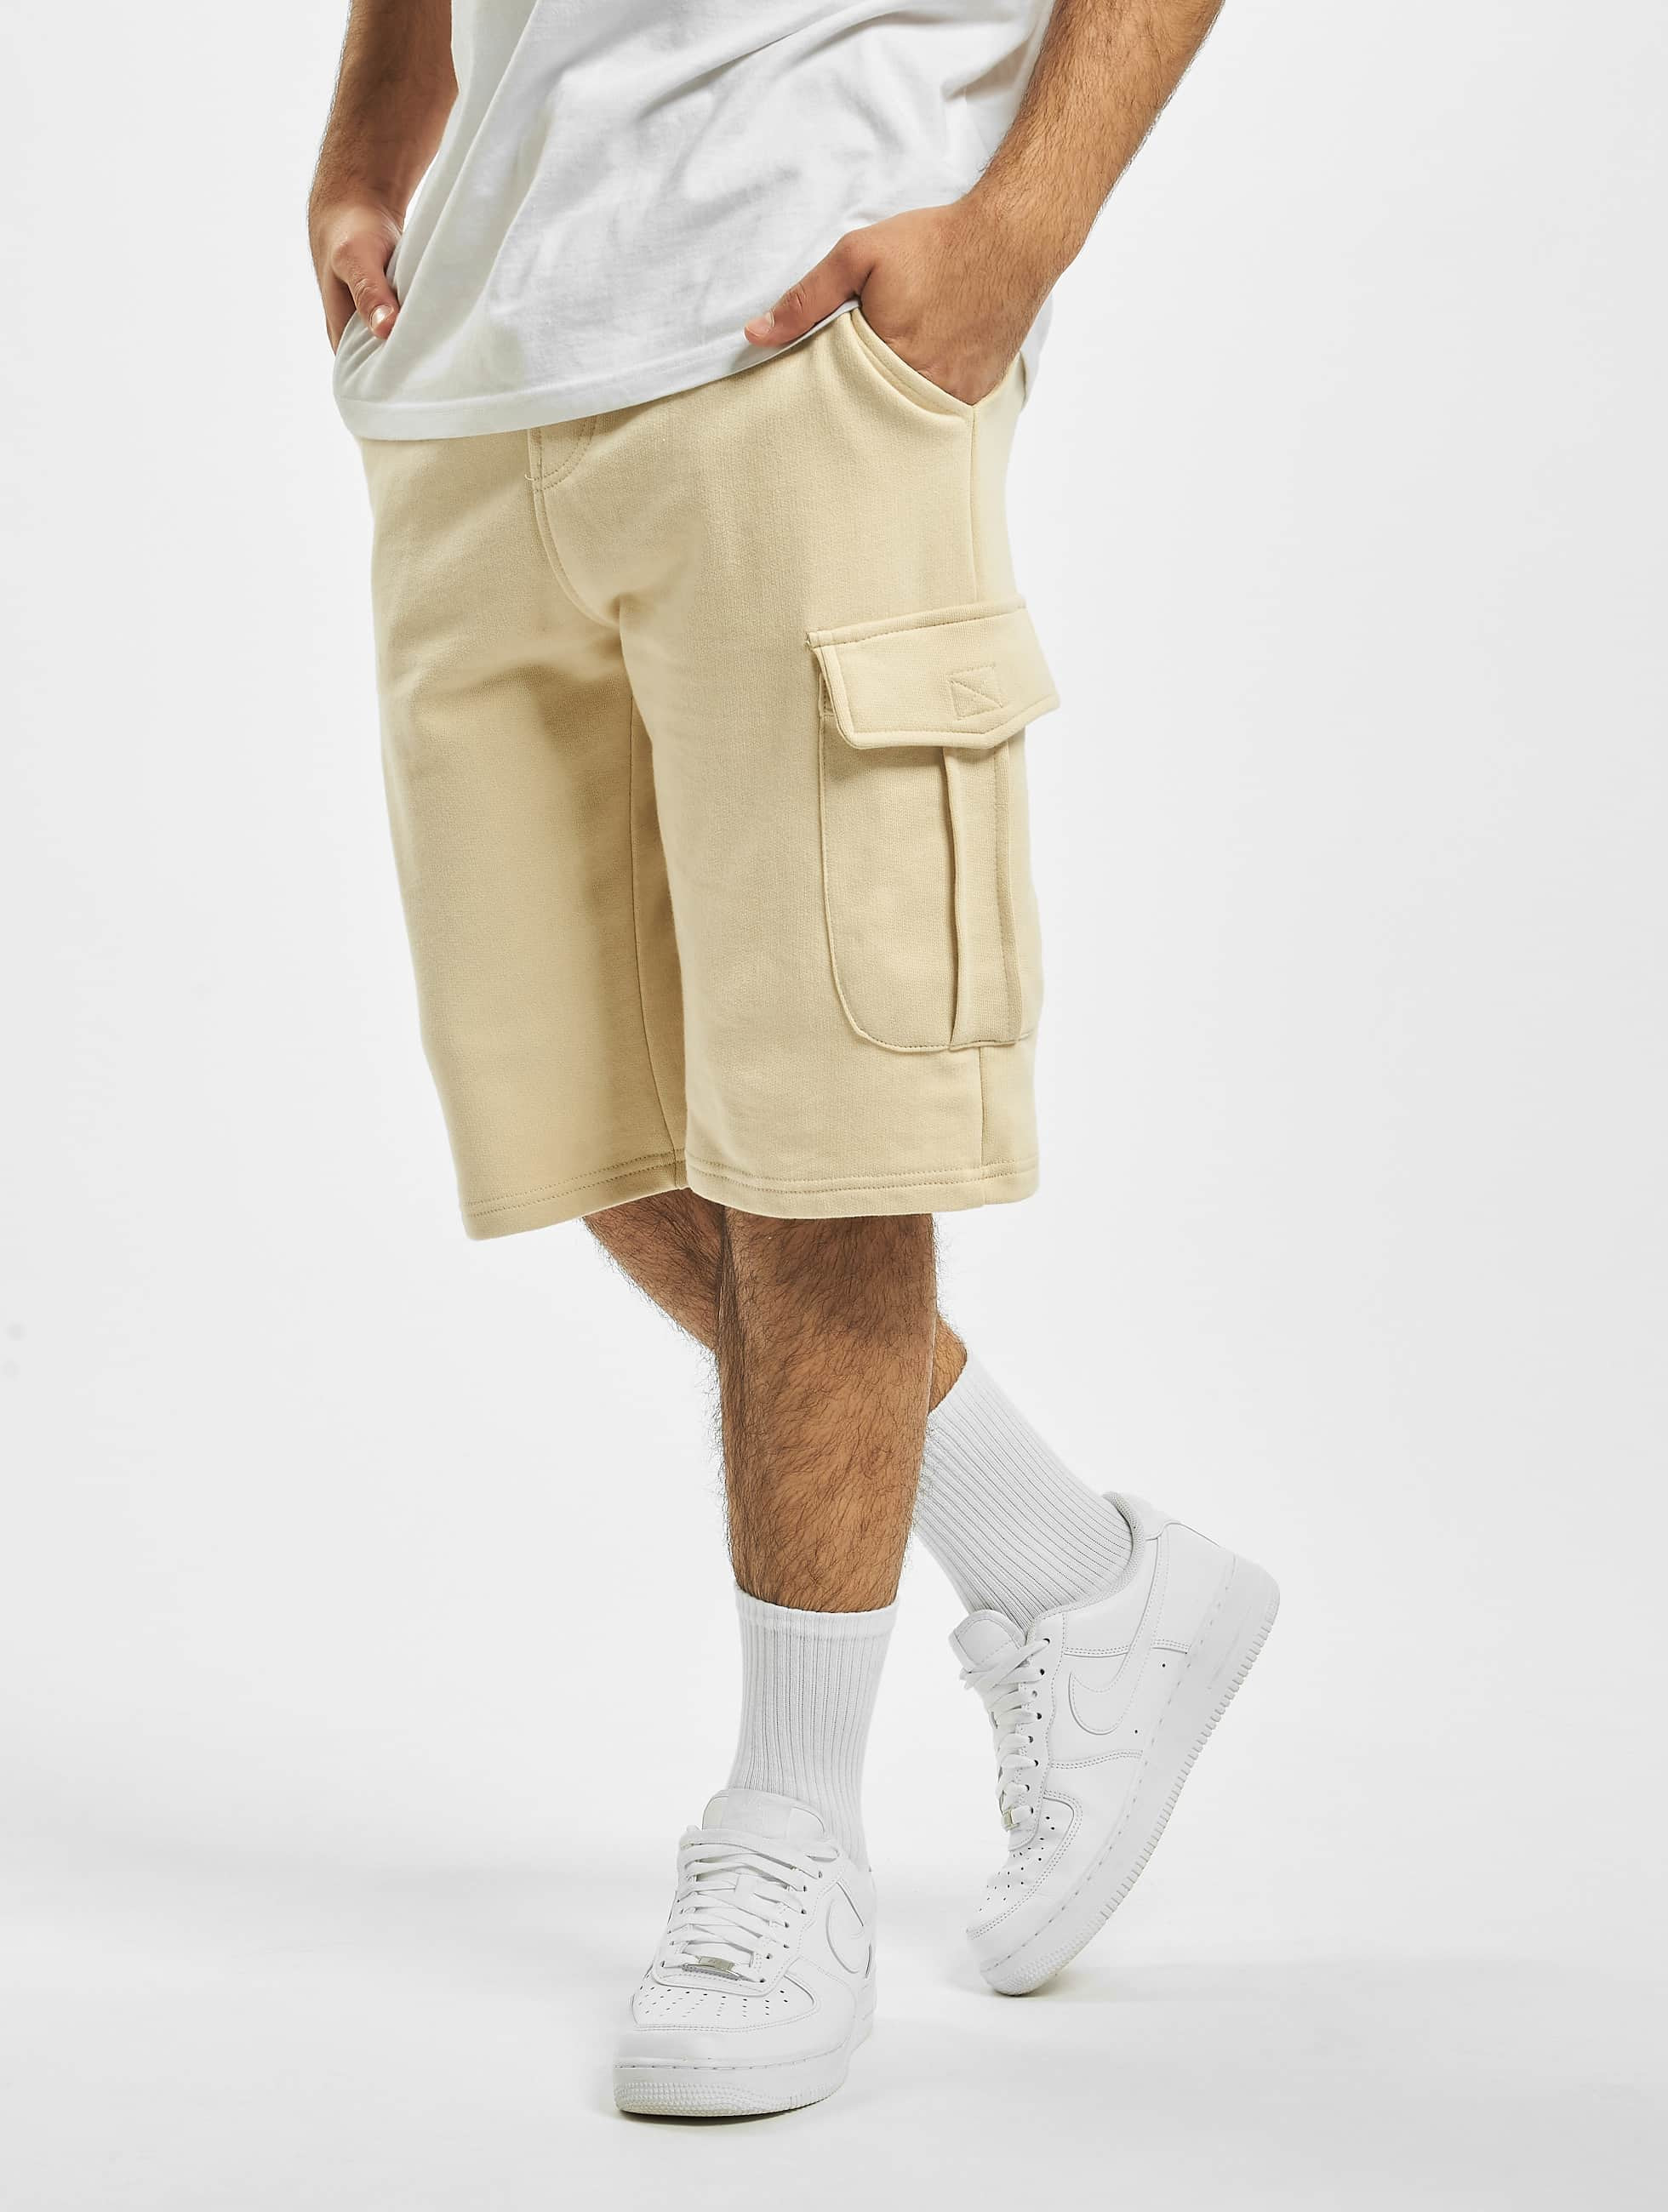 DEF / Short RoMp in beige S